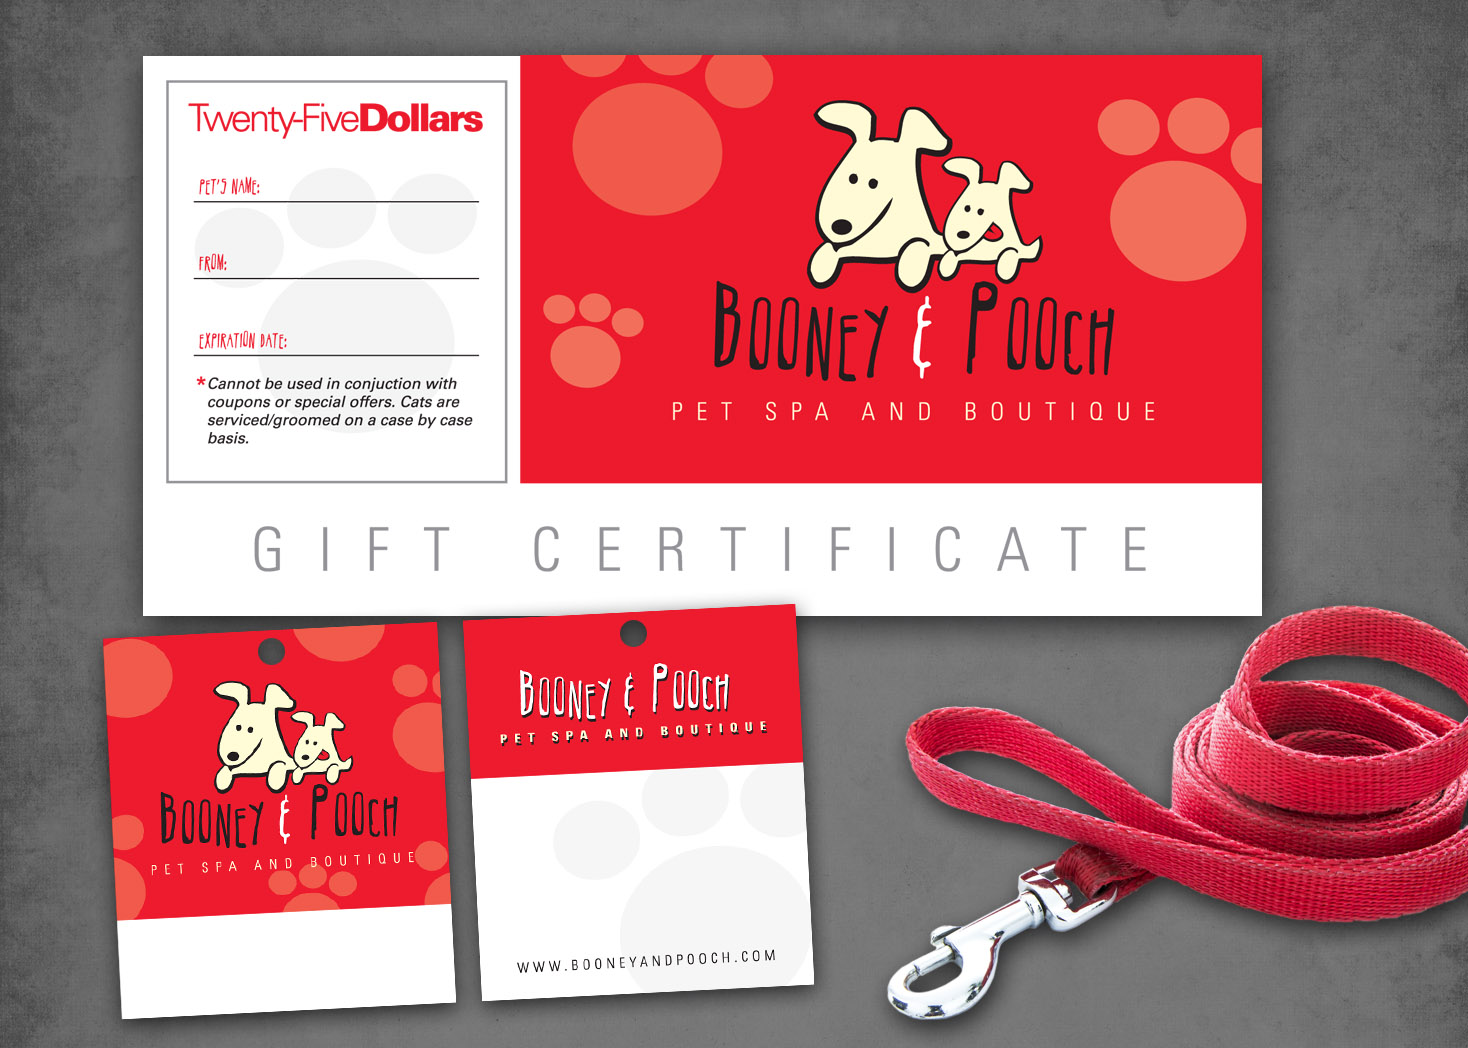 Booney and Pooch - Collateral Design - Lehman Design